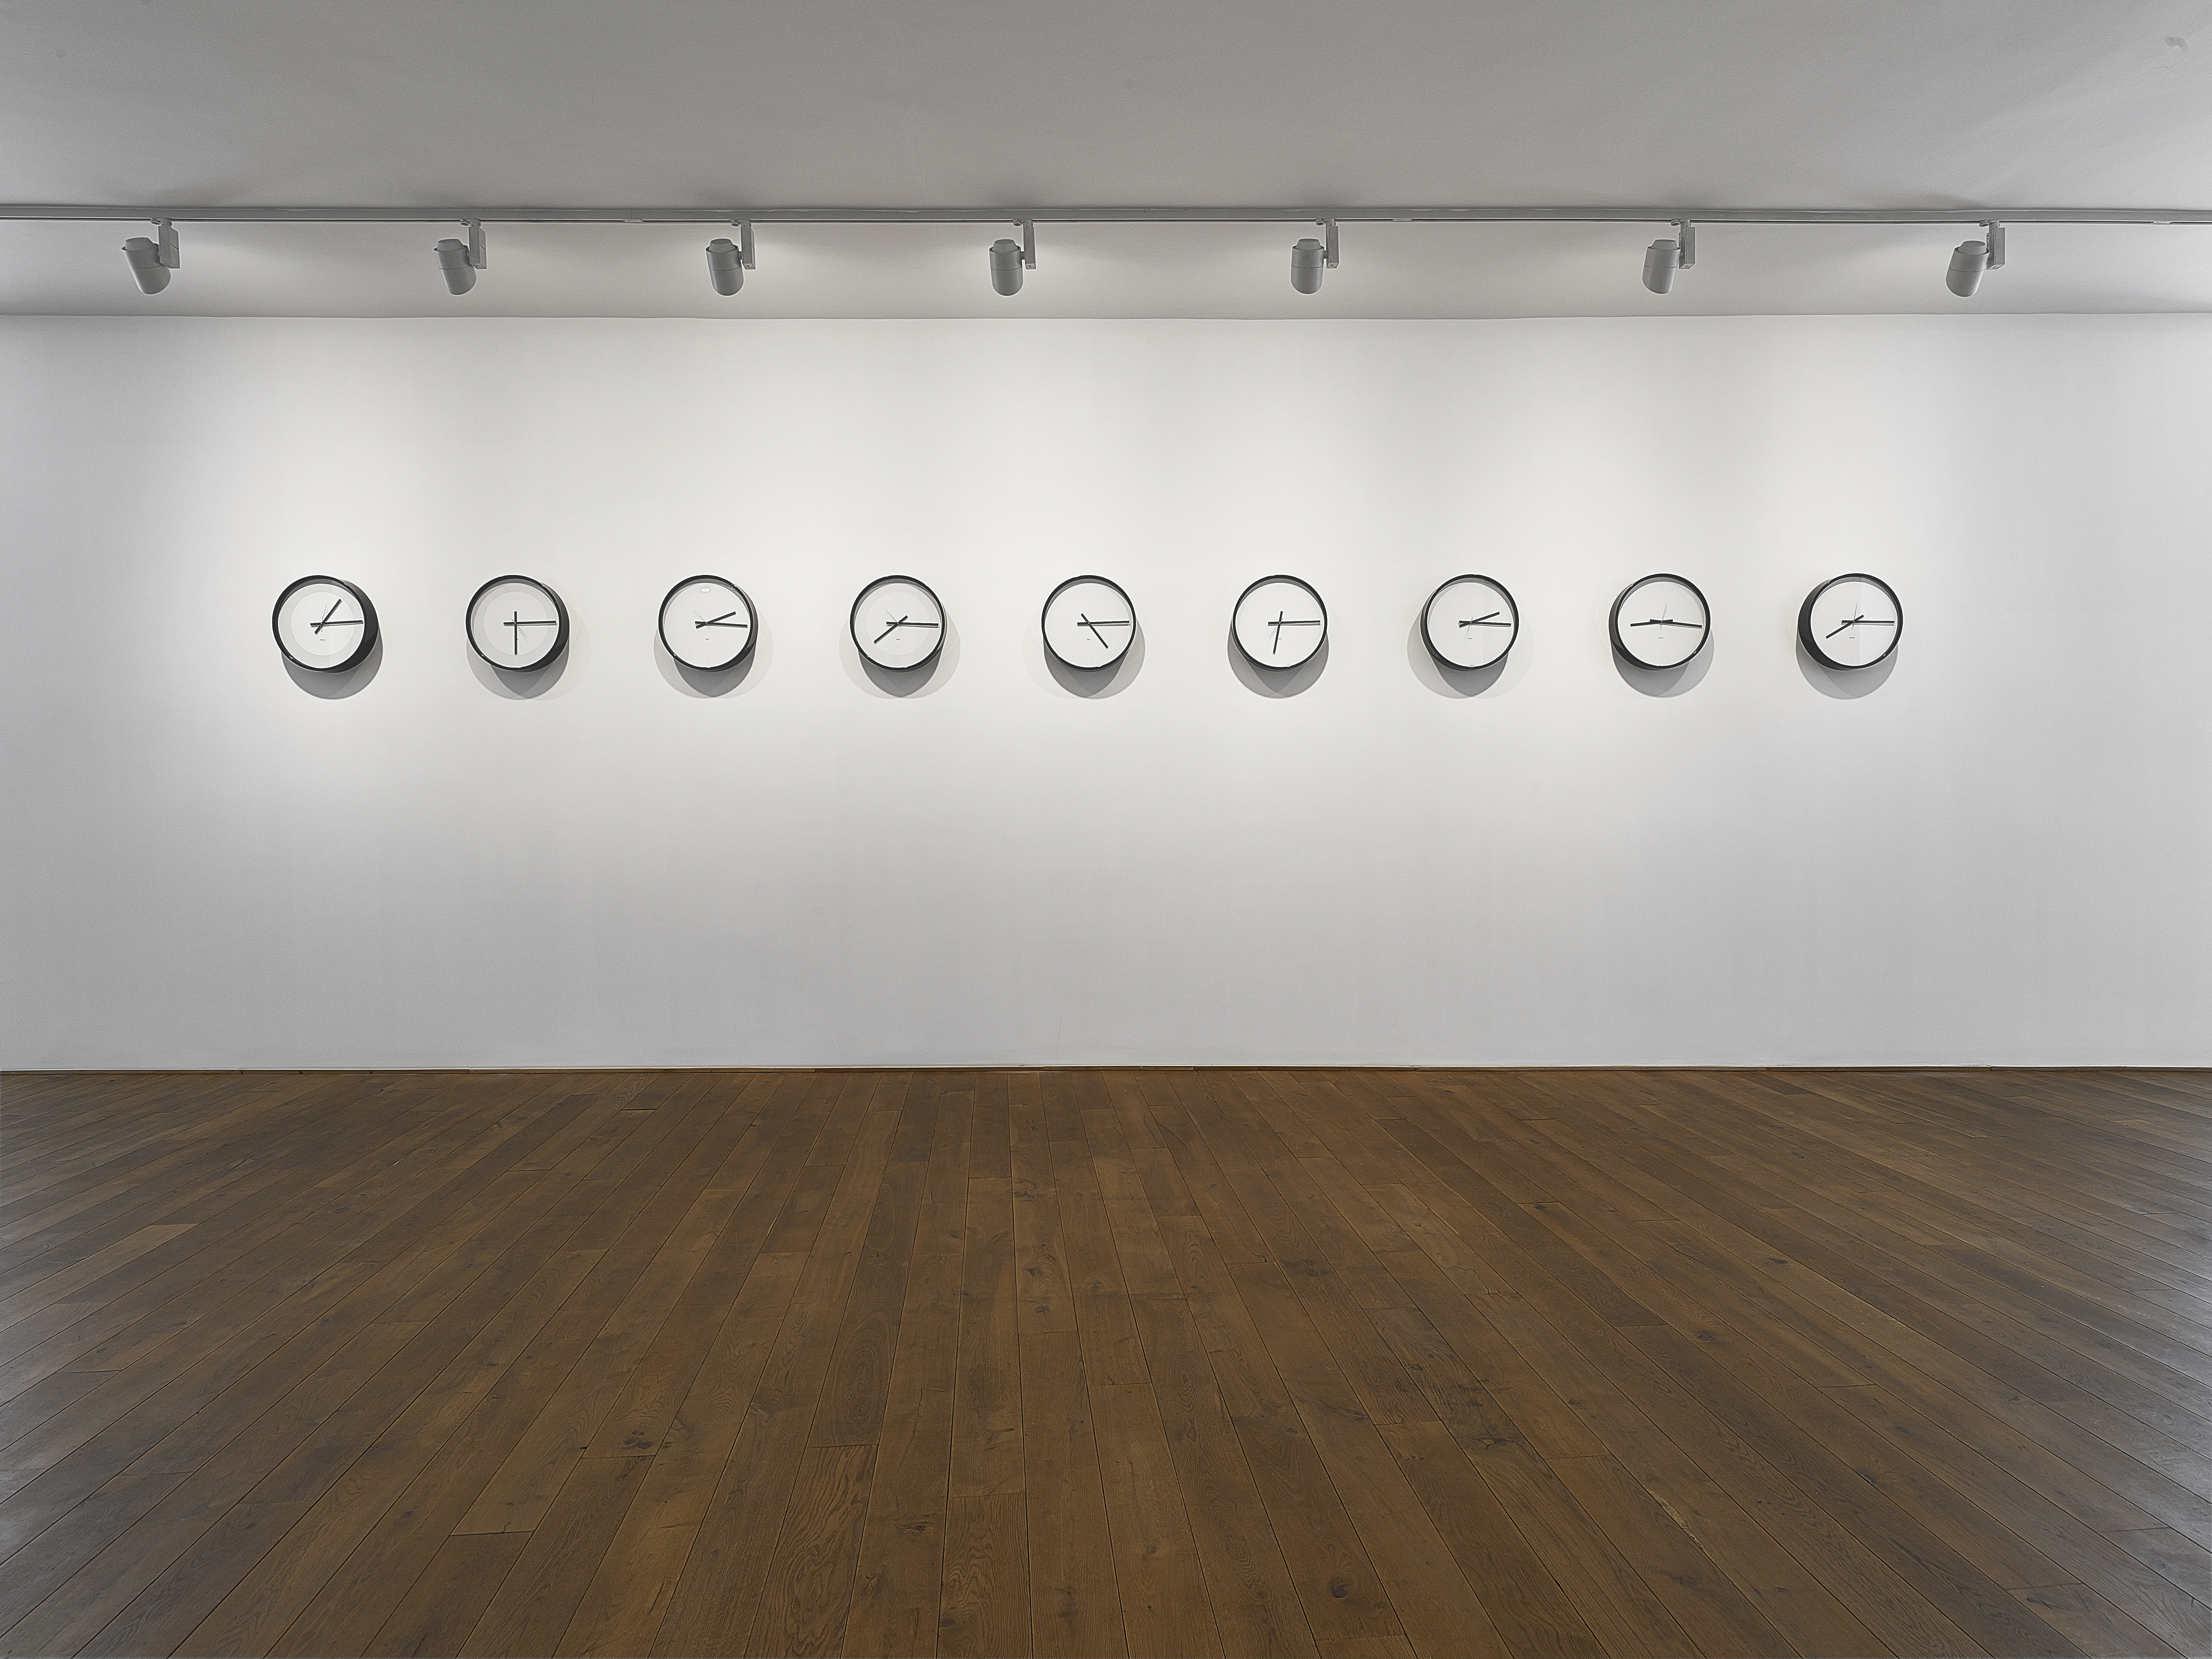 6. Katie Paterson, Timepieces (Solar system), overall, 2014.jpg